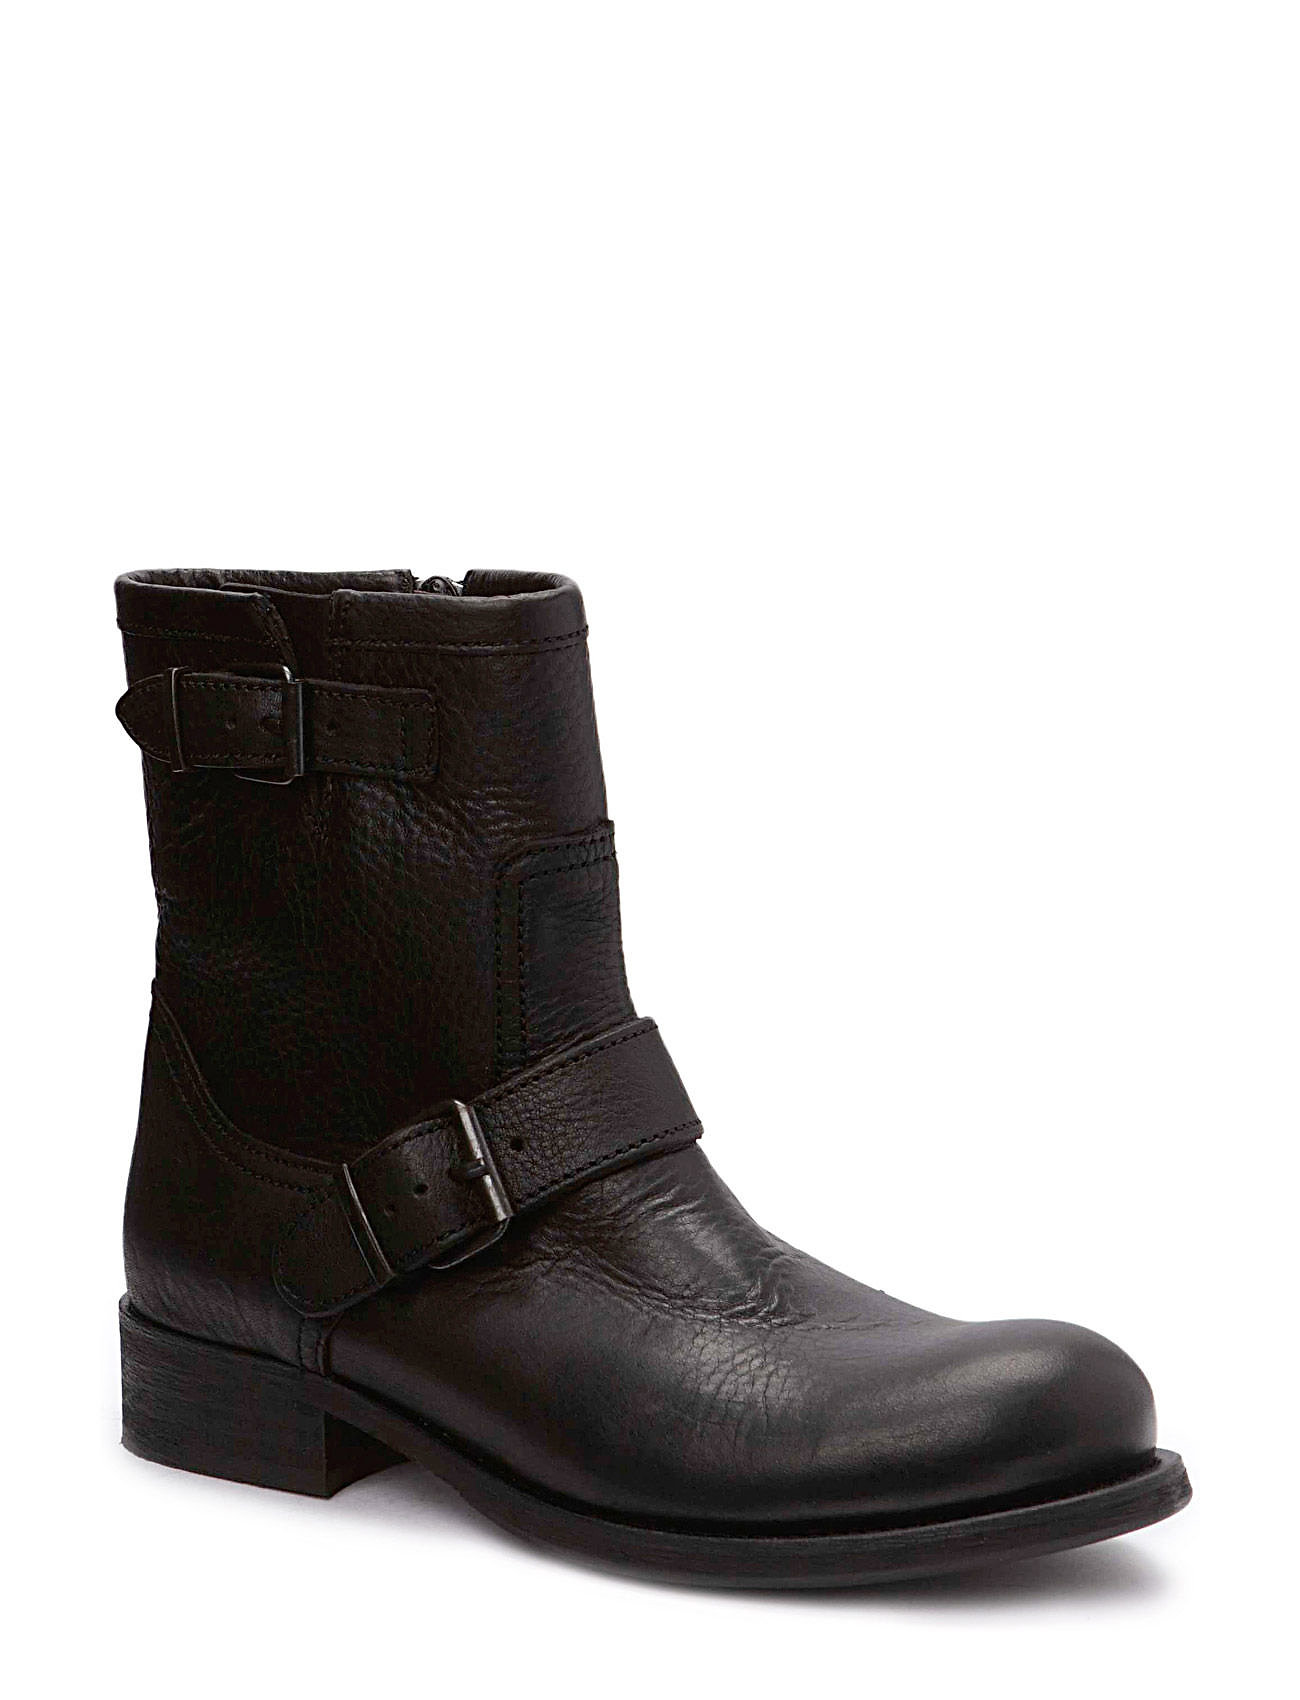 Billi Bi Short Boot - BLACK TOMCAT 80